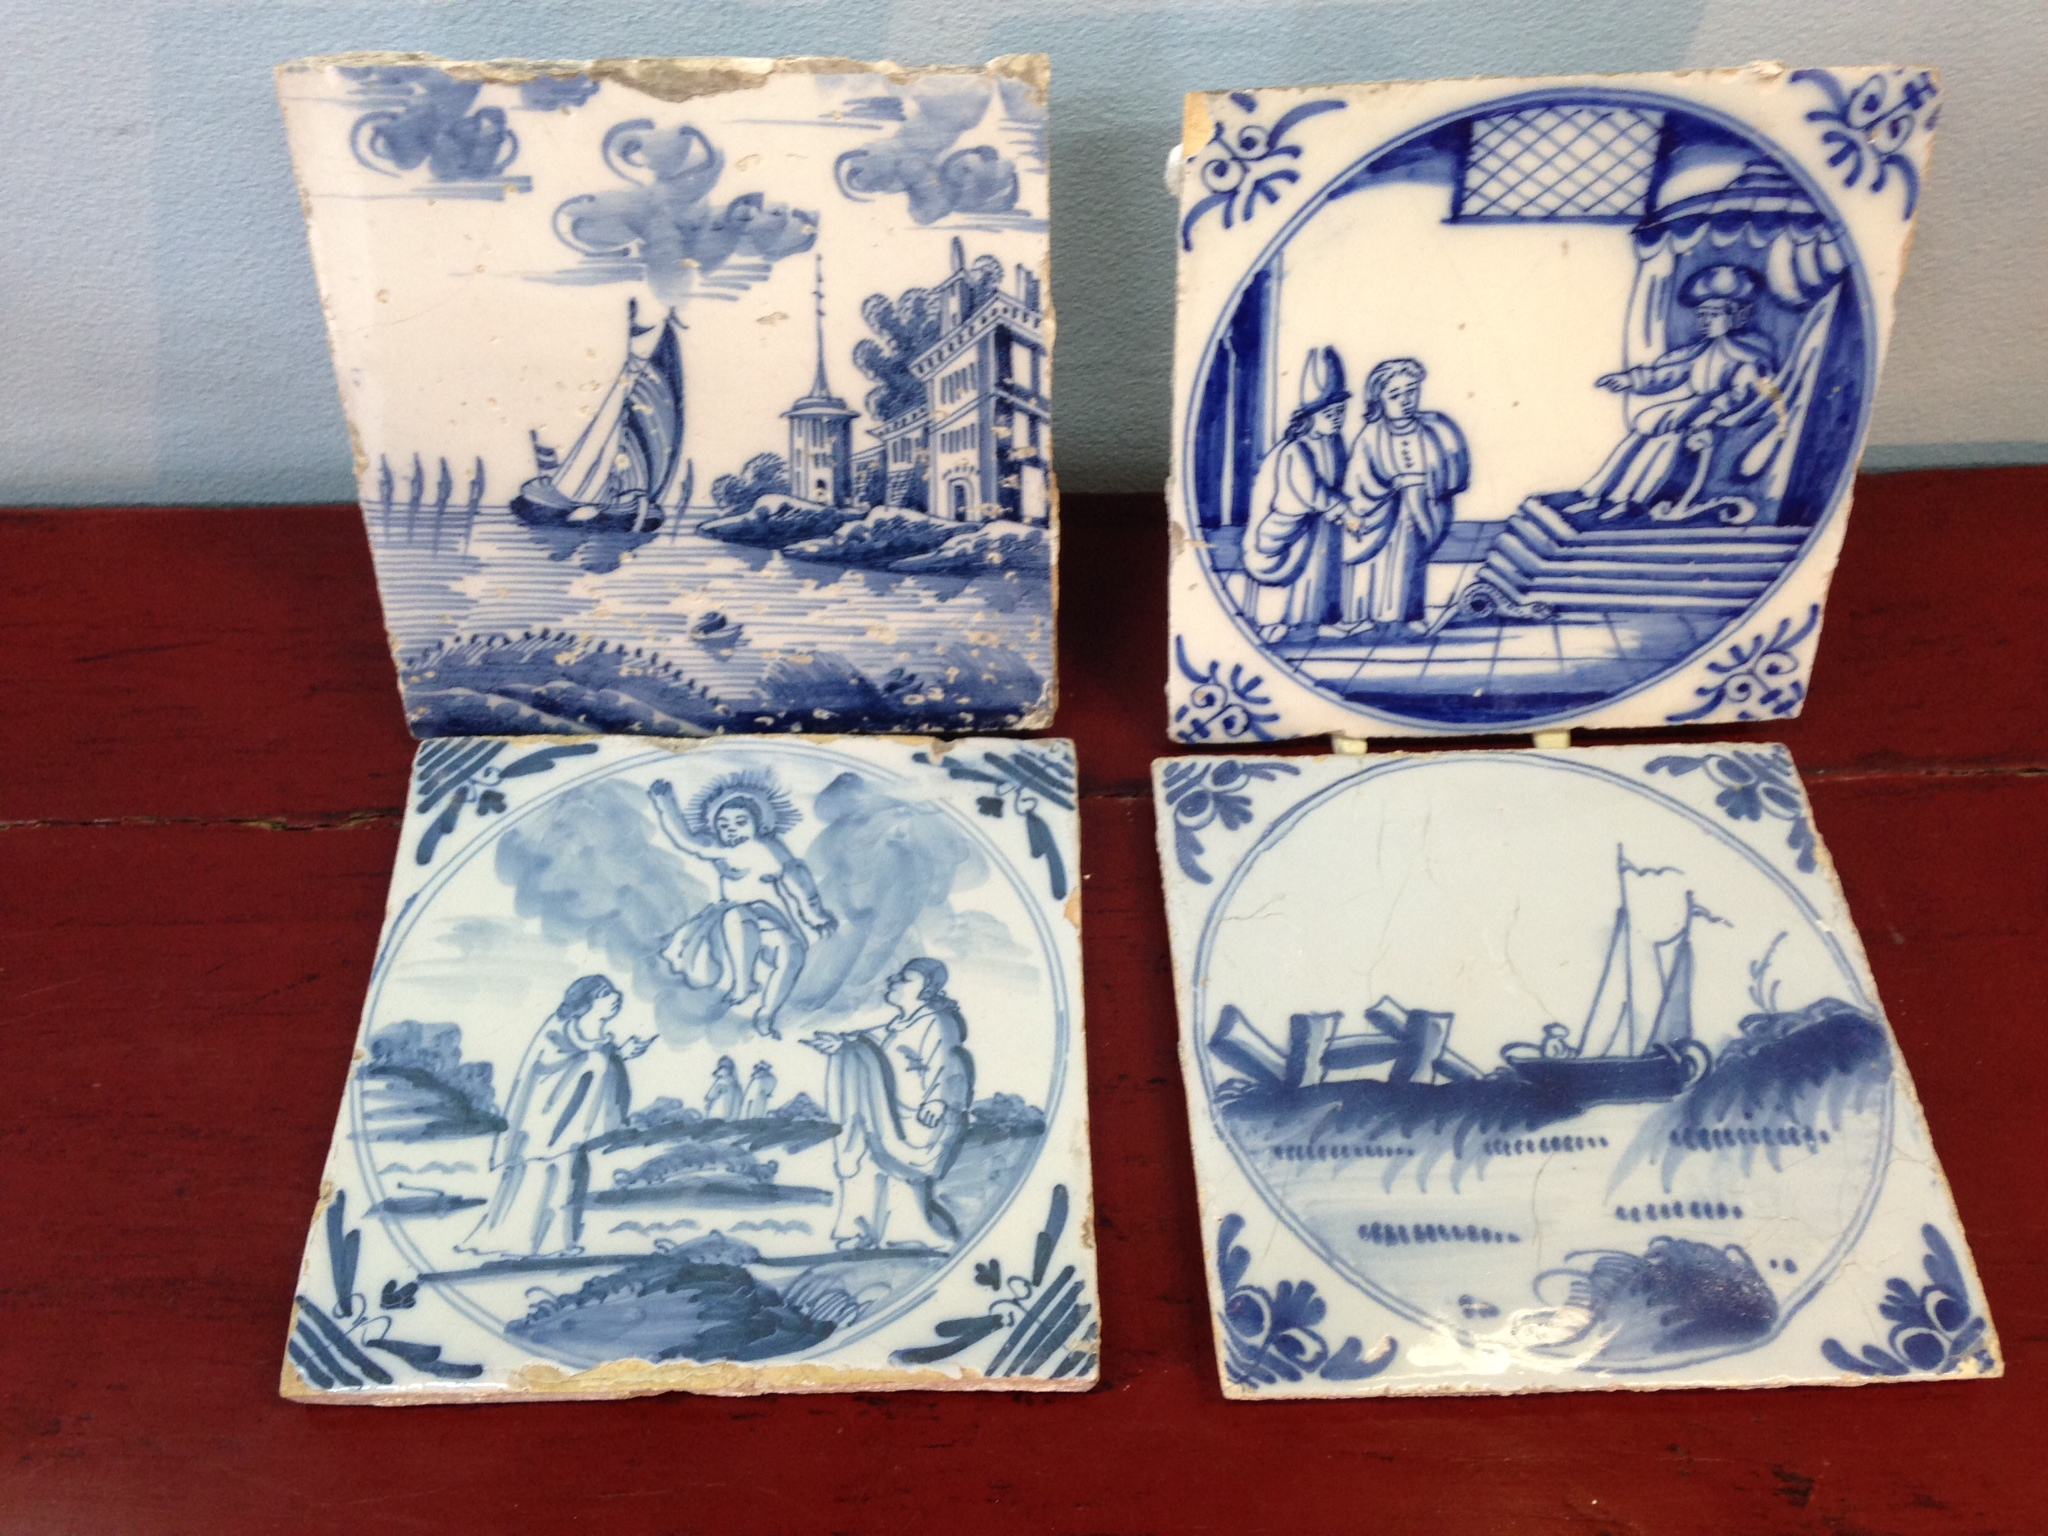 Lot 6 - Four late 18th early 19th c delft tiles